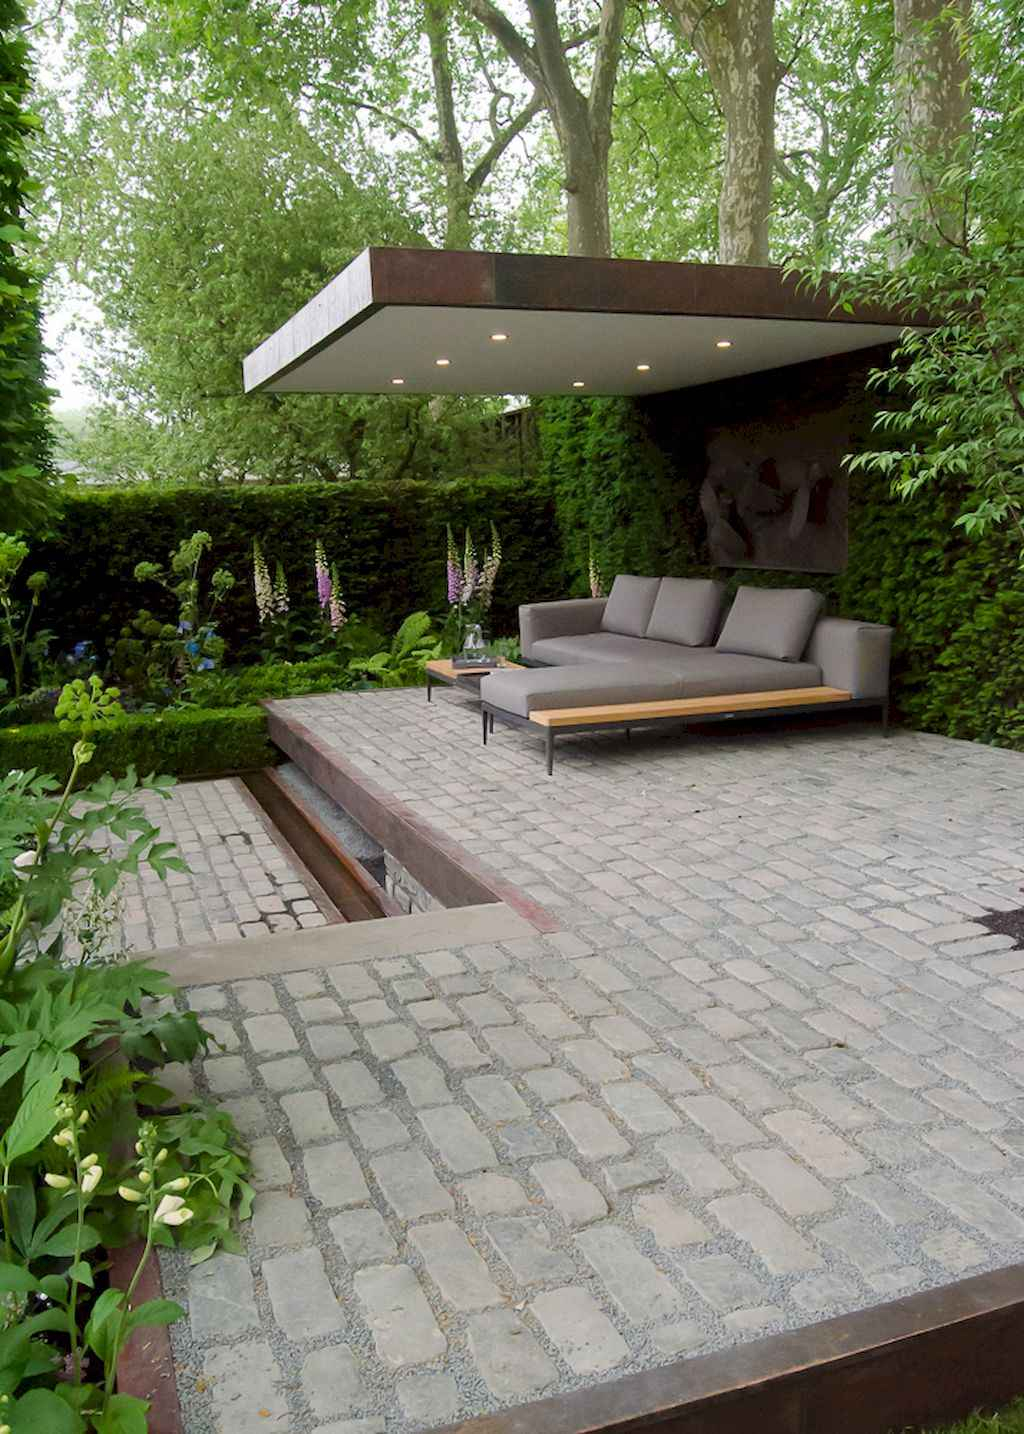 20 Beautiful Backyard Landscaping Ideas Remodel 15 Roomadness intended for Beautiful Backyard Landscaping Ideas